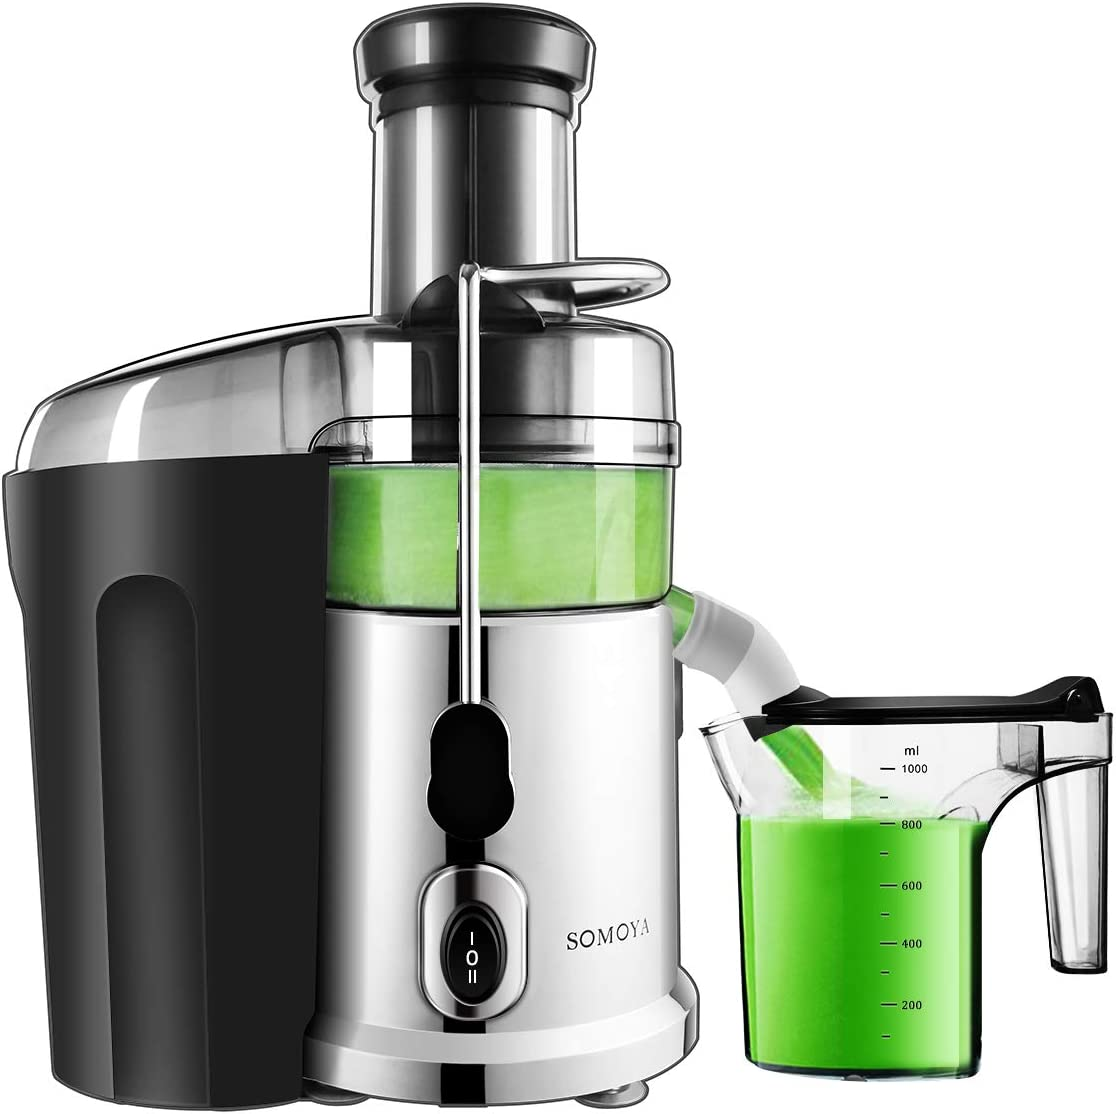 Juicer Machine Juice Extractor Centrifugal Juicer Easy Clean 2020 700 Watt with Quiet Motor,High Speed Stainless Steel, Extract Fresh Vegetables and Fruits Juicer